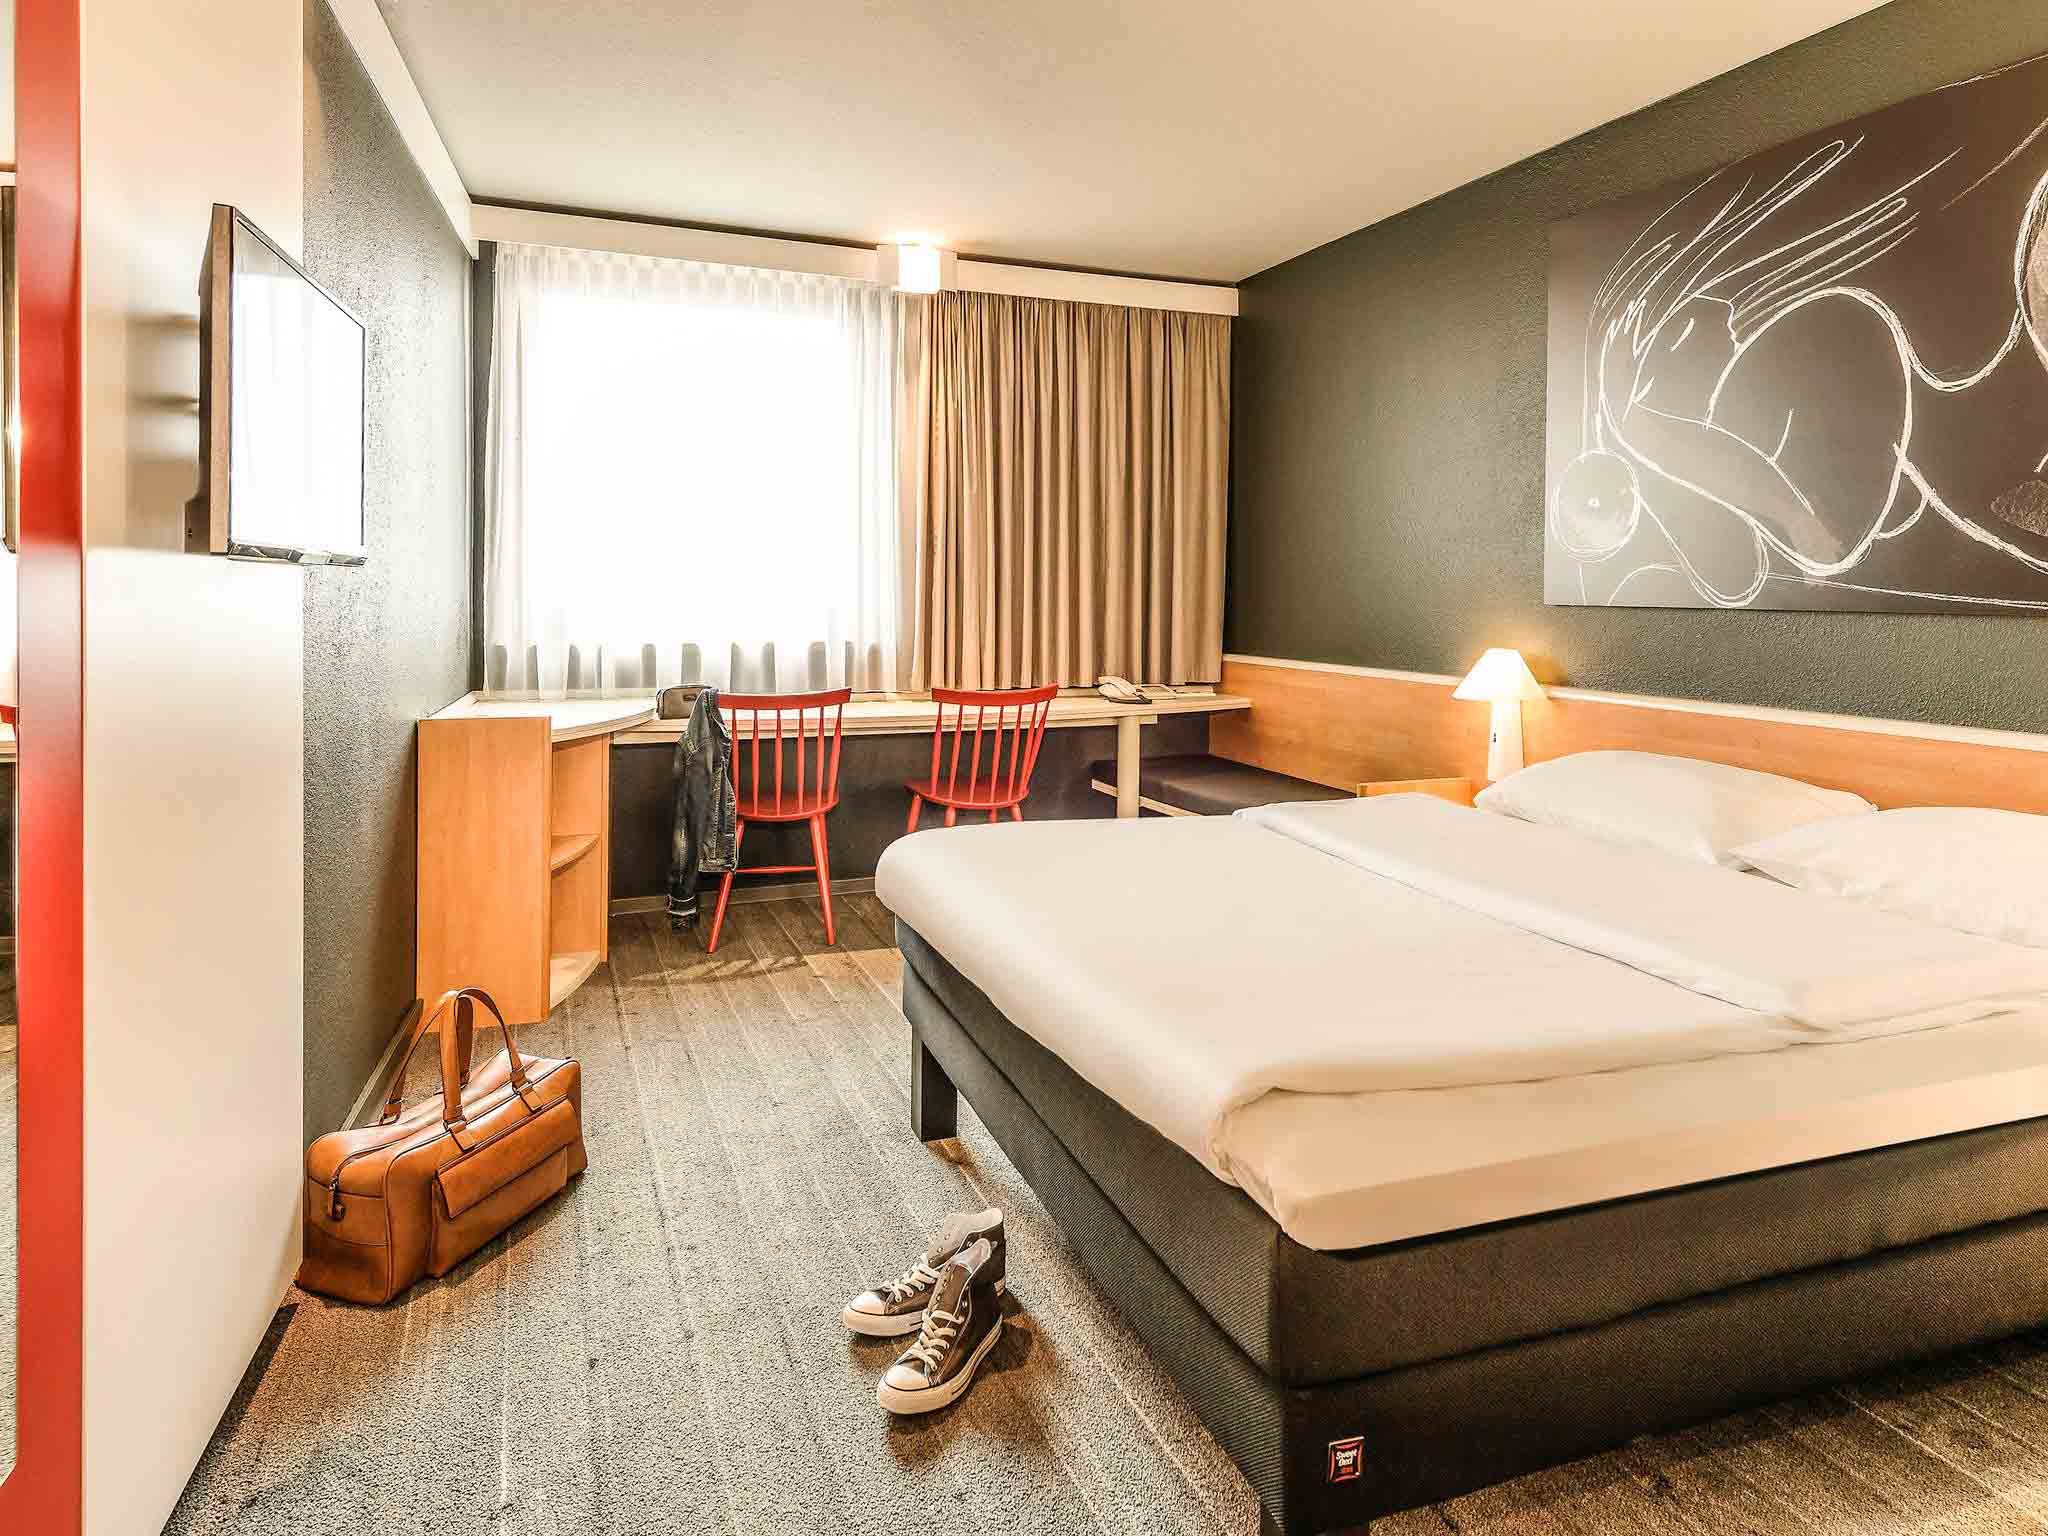 Ibis wien mariahilf hotel 1060 wien accor for Wine and design hotel vienna